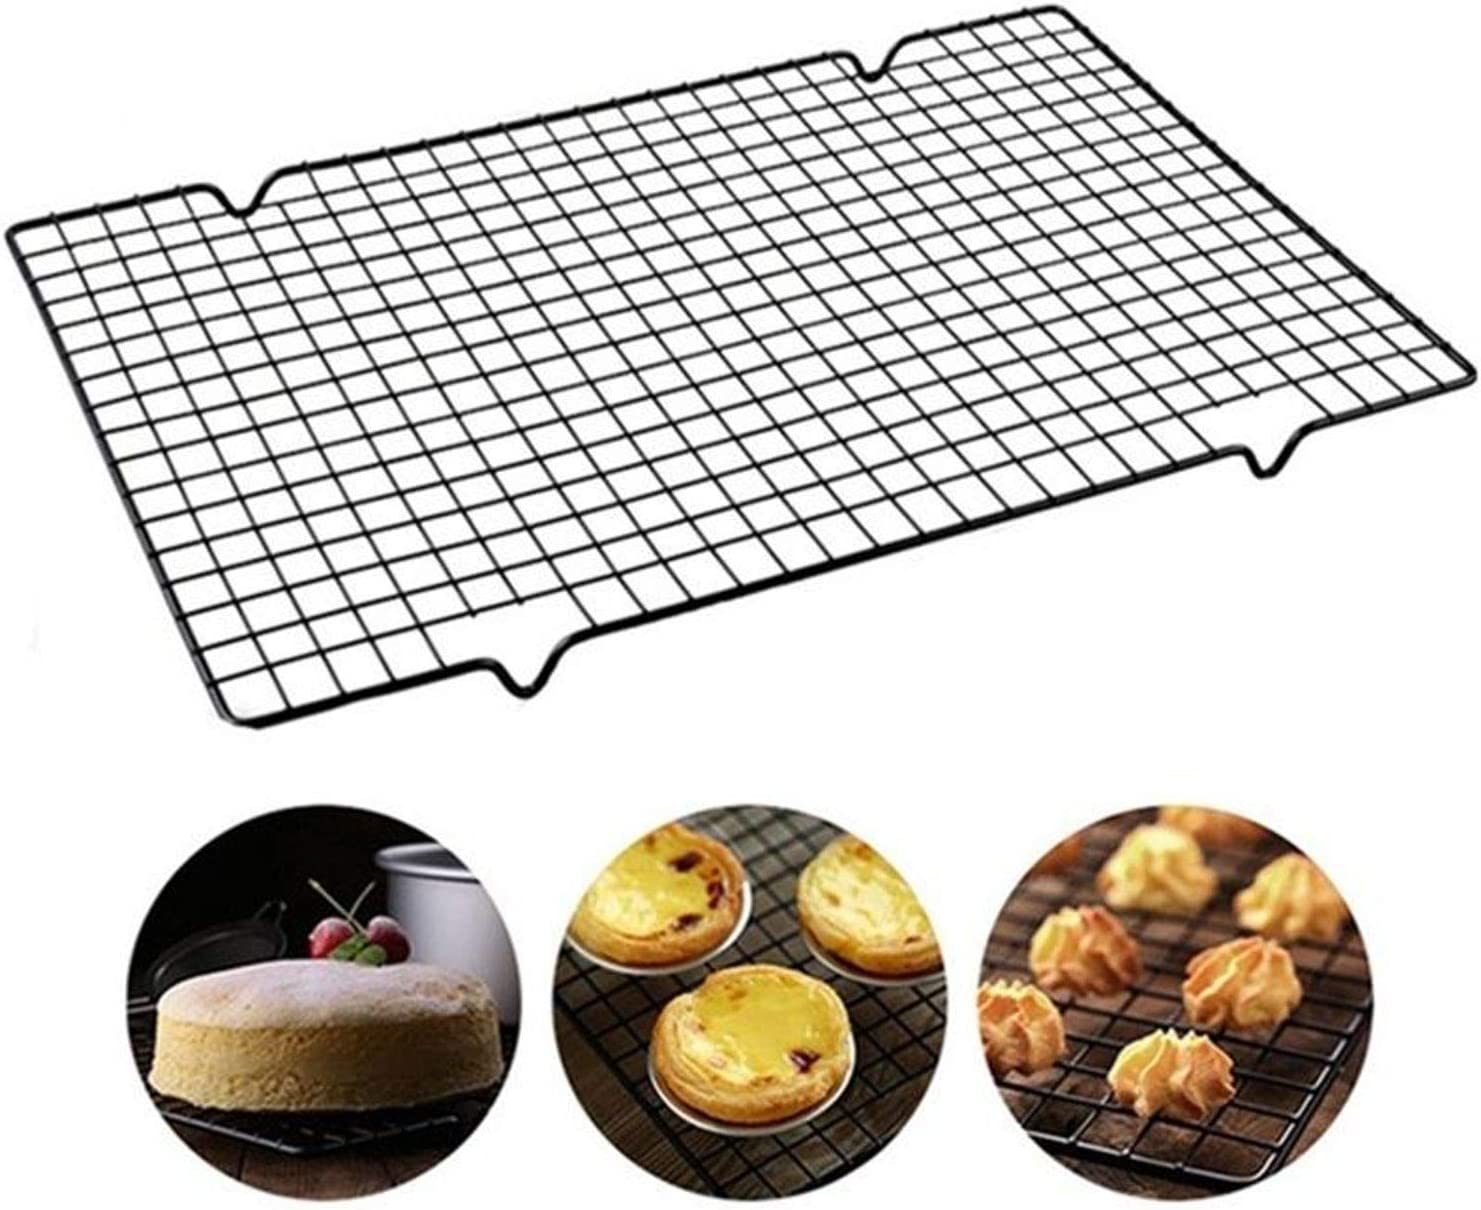 BALAKI Cookie Sheets for Baking Stainless Steel NEW before selling Wir Nonstick Set A surprise price is realized